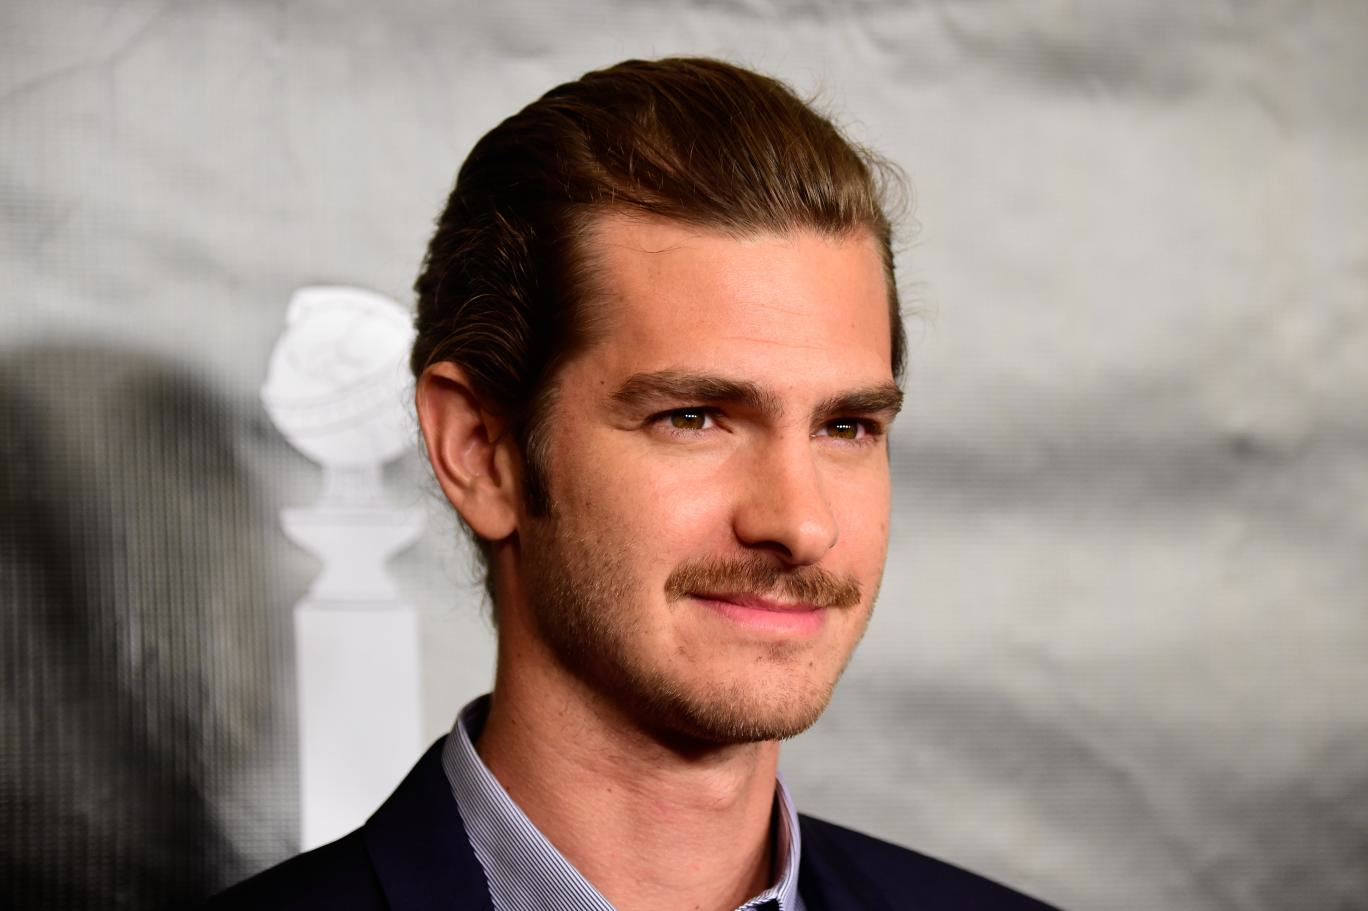 Spider Man Actor Andrew Garfield Has Interview Meltdown, Is Refreshingly Honest UNILAD GettyImages 4839086125